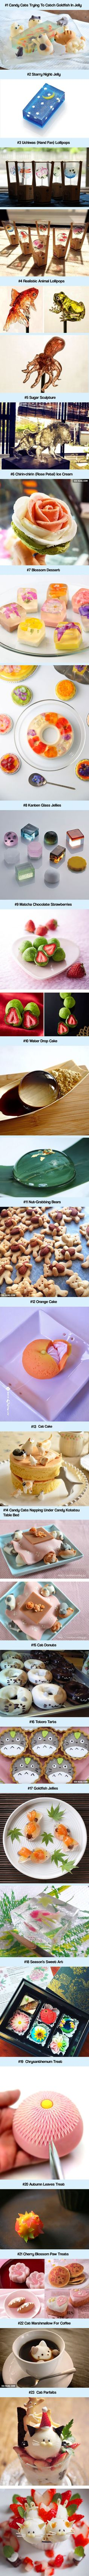 23 Crafty Desserts From Japan That Are Too Cute To Eat